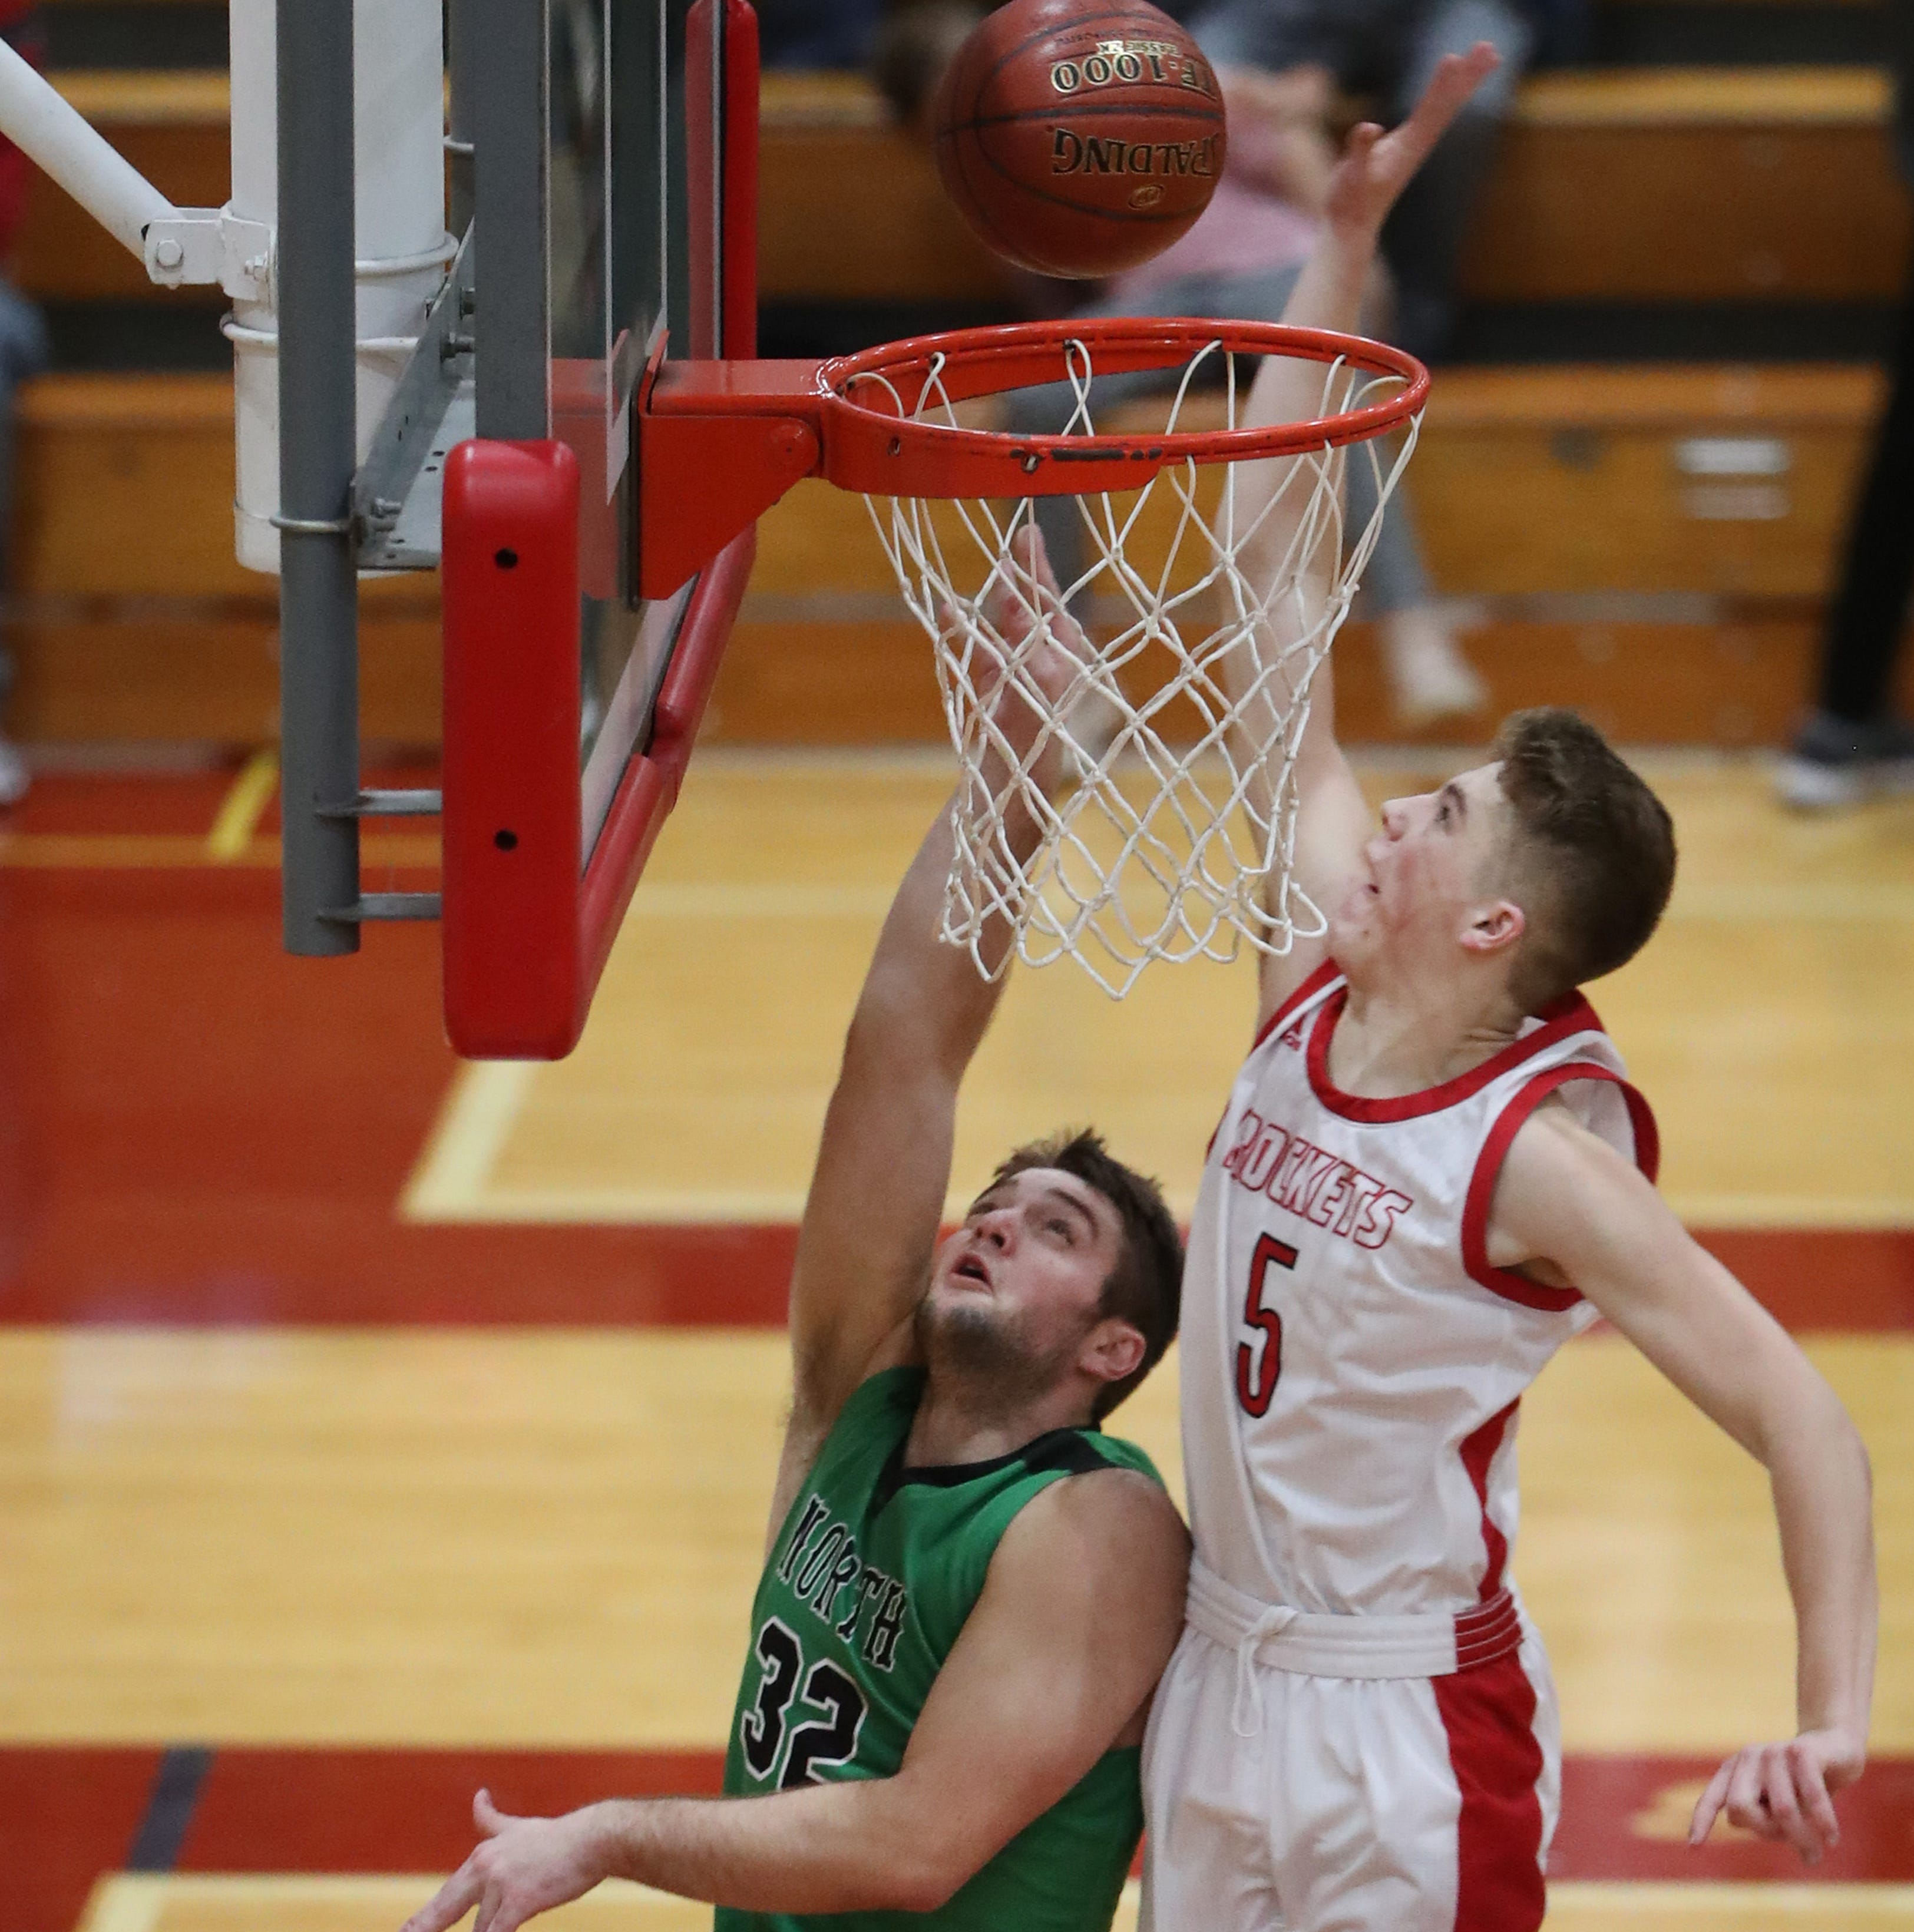 High school basketball: Kimberly boys rebound with big win over Kaukauna